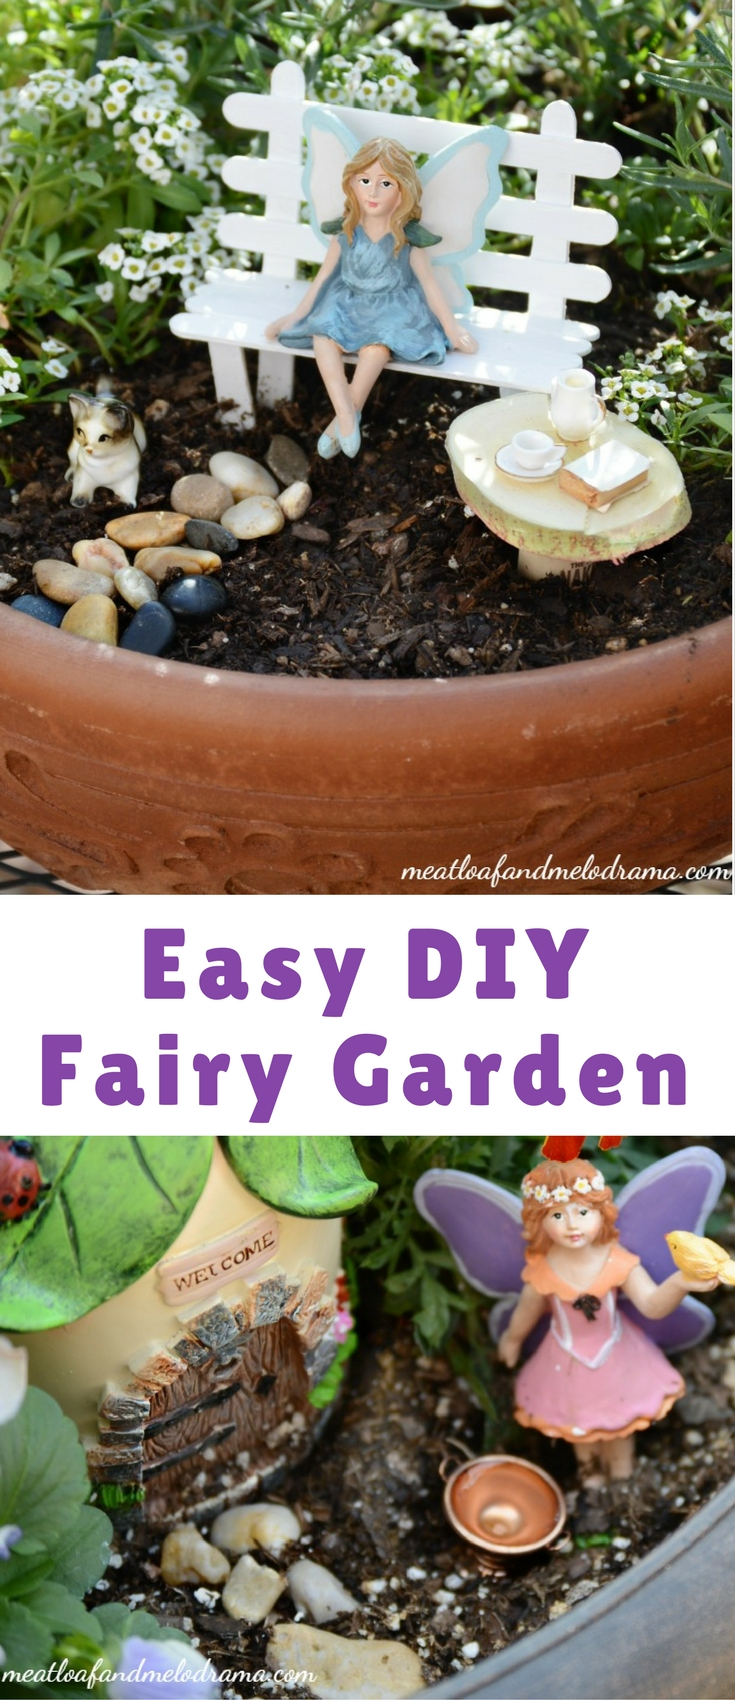 This easy DIY fairy garden is so simple to make and doesn't take up a lot of space. It's a fun project for both adults and kids and an enchanting way to spruce up your deck or patio!